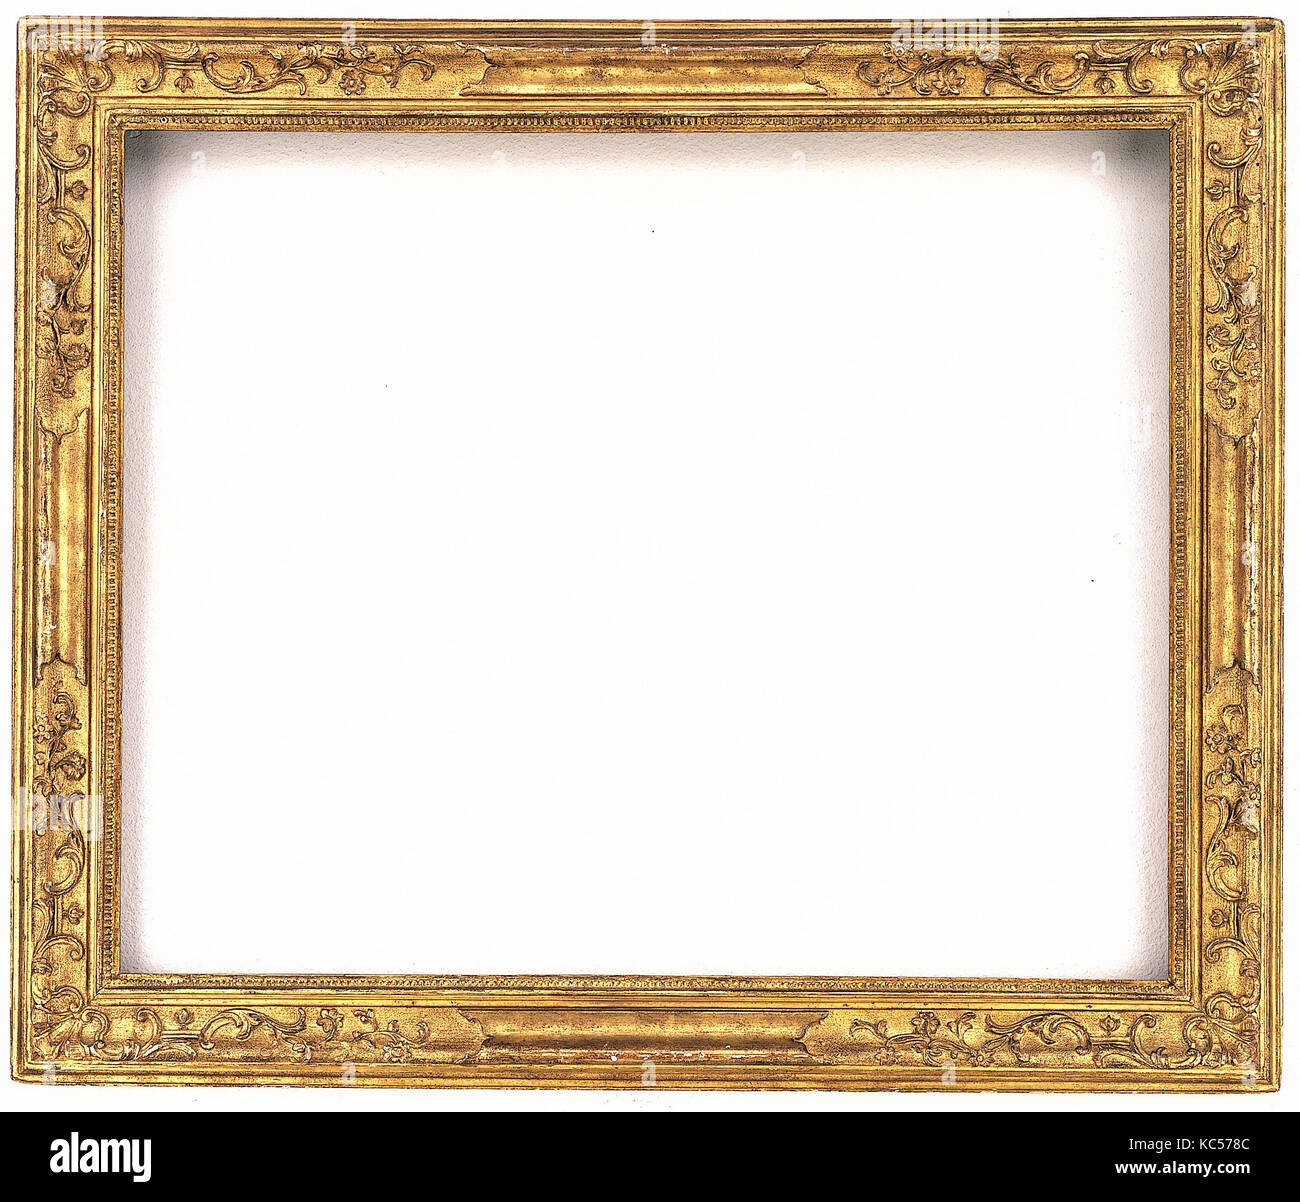 Canaletto frame 172040 italian venice pine 179 x 232 12 x canaletto frame 172040 italian venice pine 179 x 232 12 x 172 135 x 19 cm frames jeuxipadfo Images